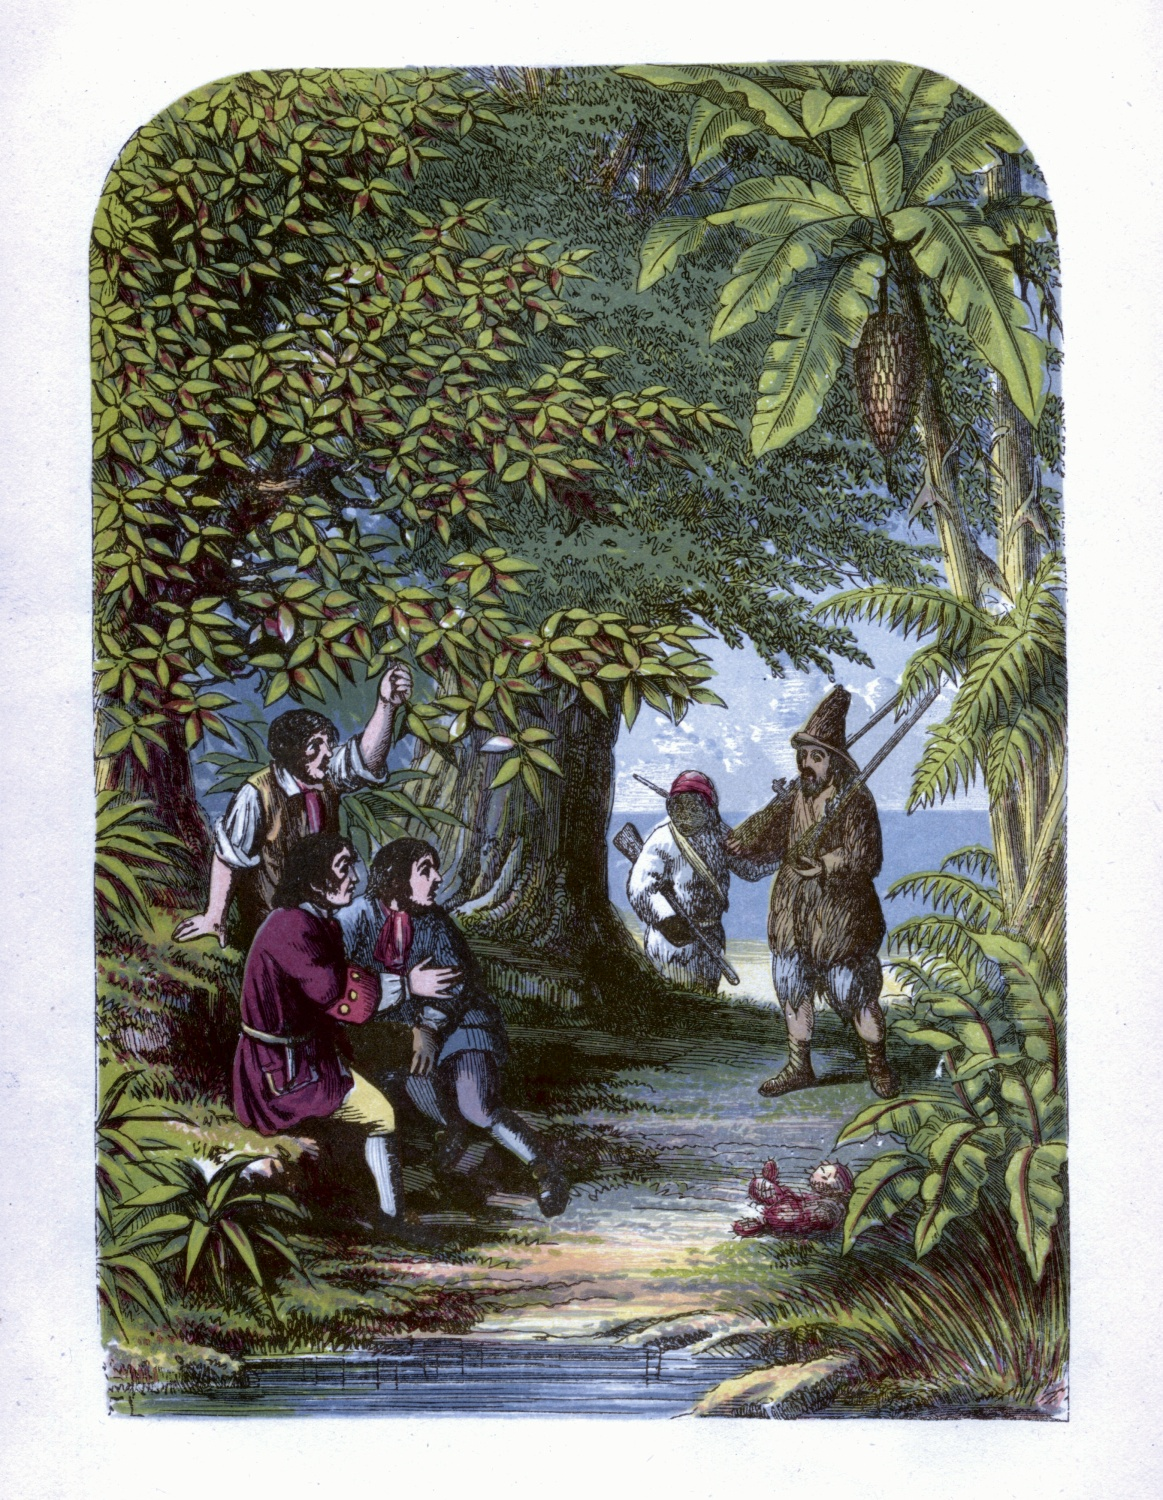 Robinson Crusoe surprising the three Englishmen